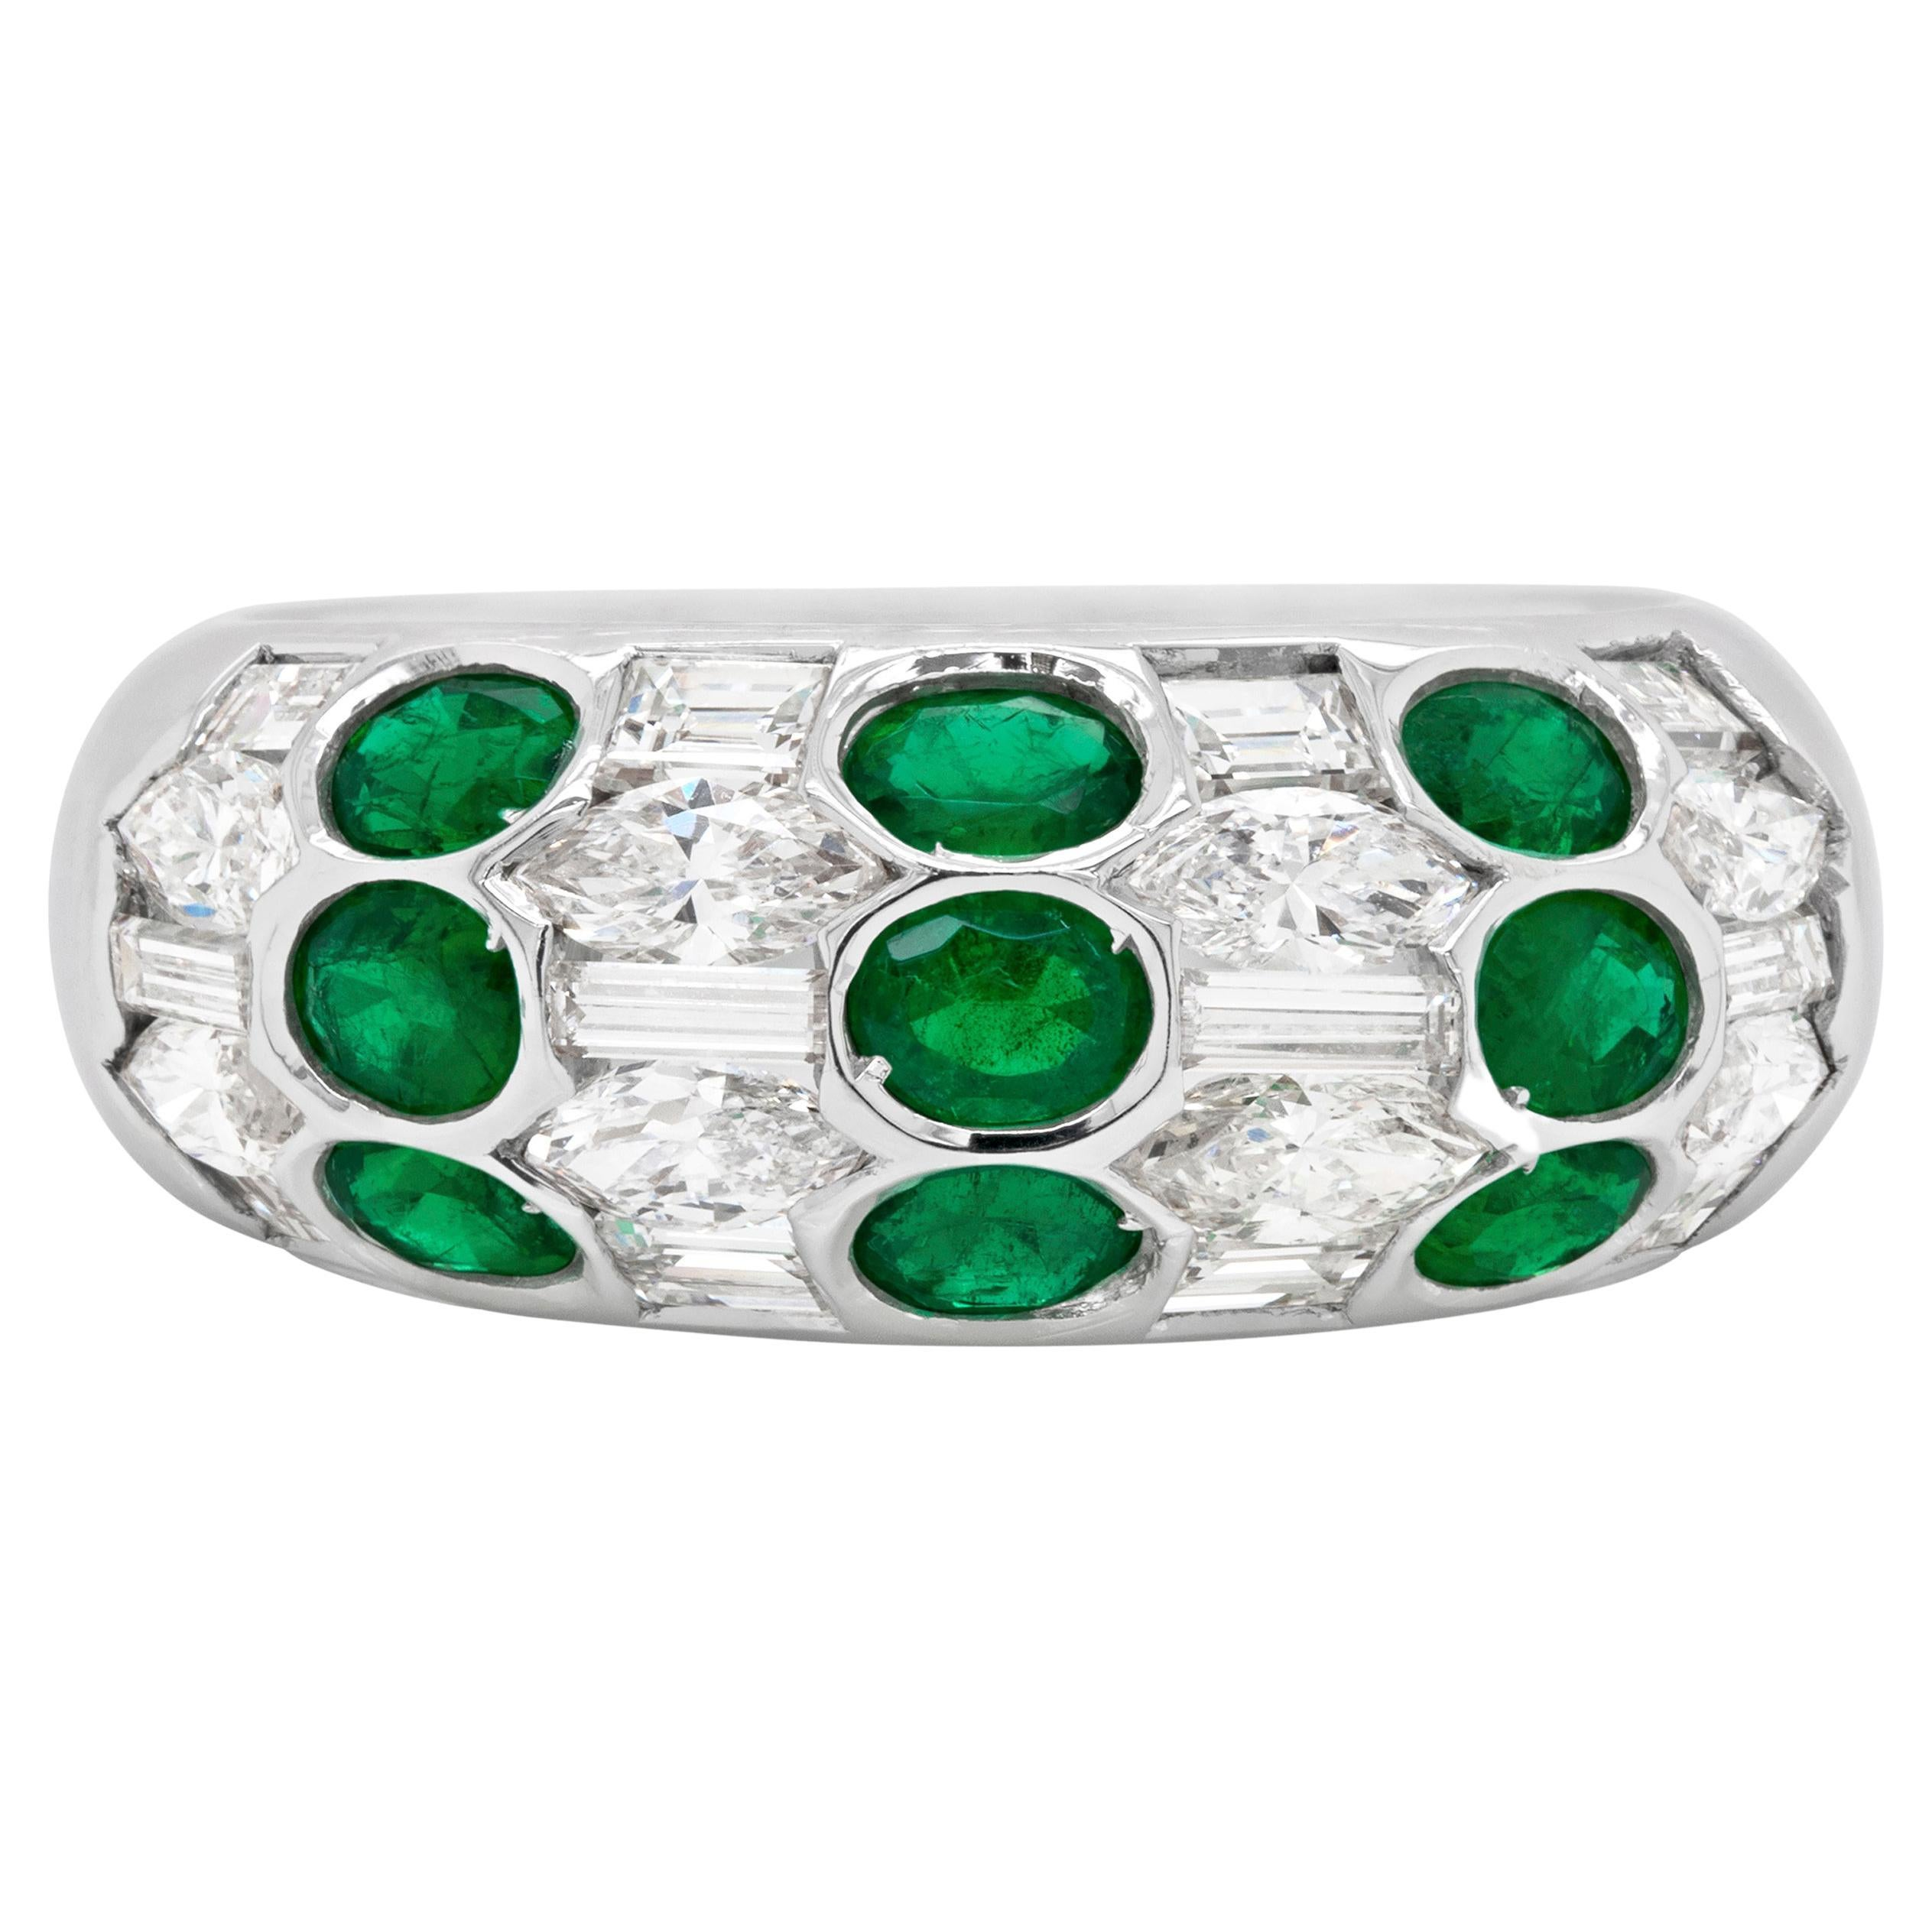 Emerald and Diamond 18 Carat White Gold Honeycomb Bombé Dome Cocktail Ring